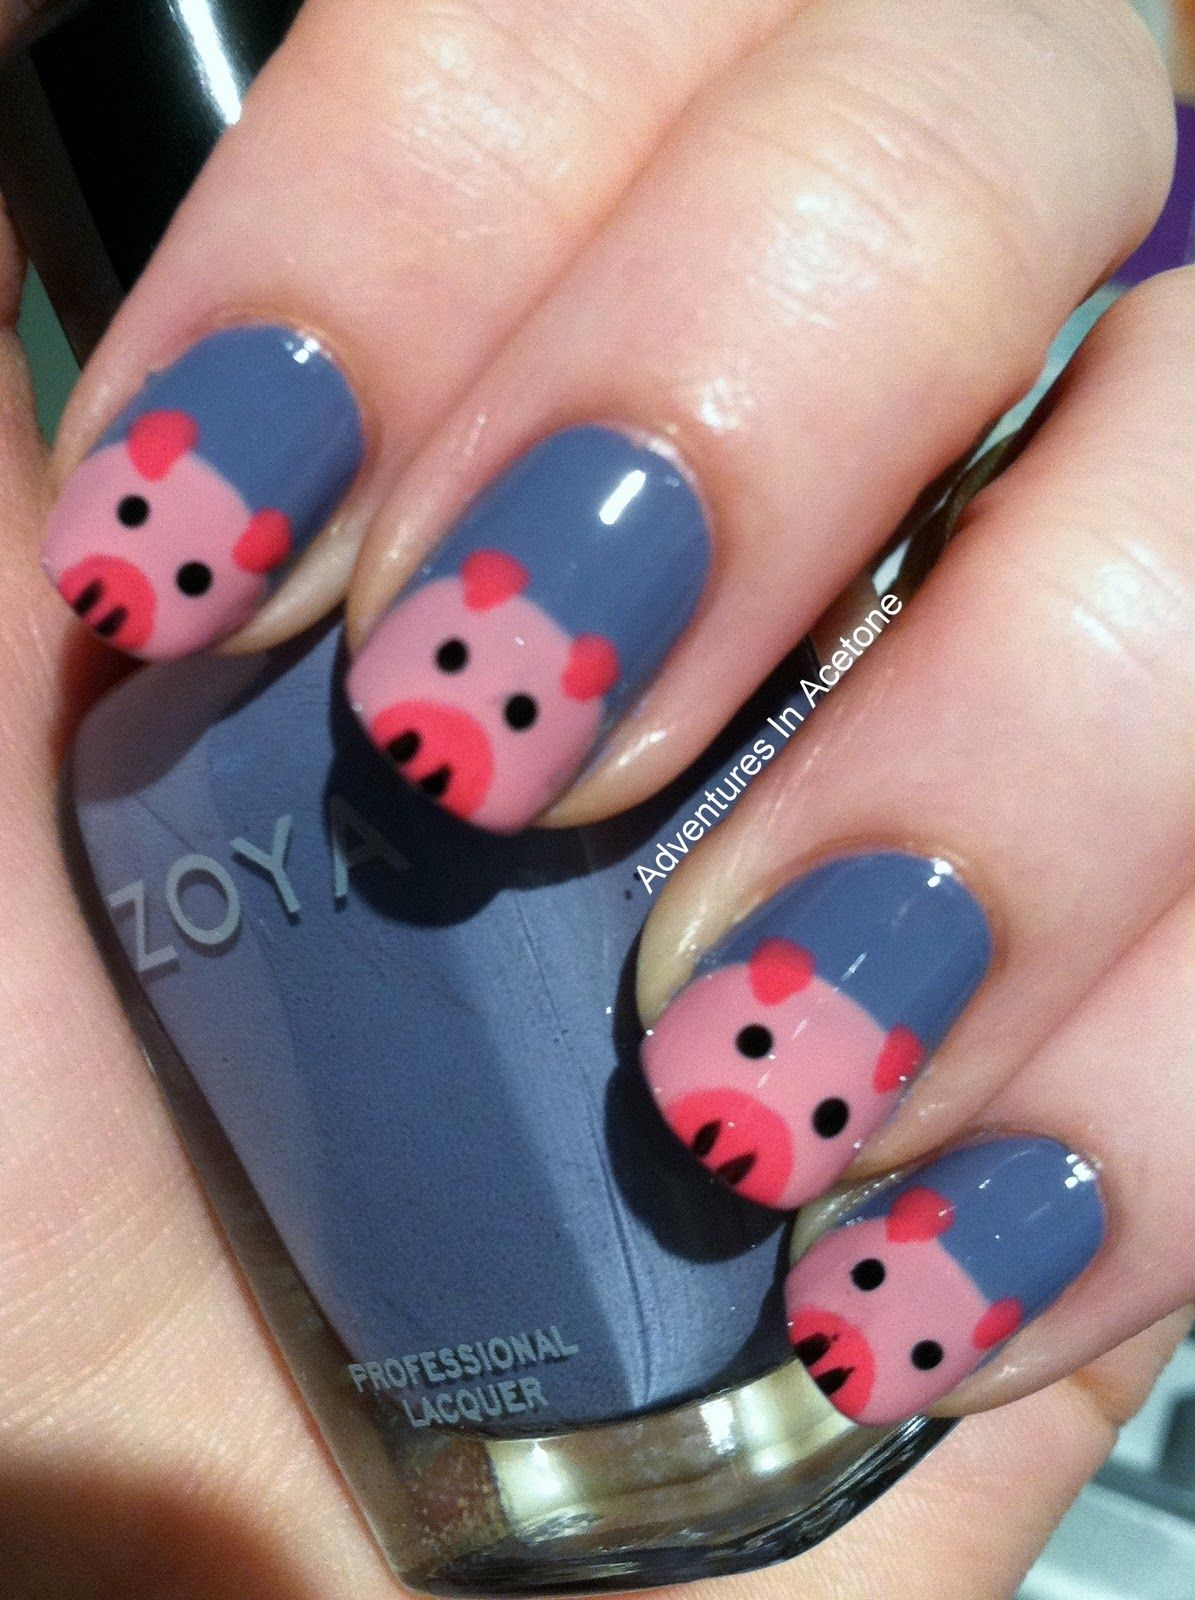 Adventures In Acetone: Piggy Nails Tutorial! 6 Steps http://www.adventuresinacetone.com/2011/11/piggy-nails-tutorial.html